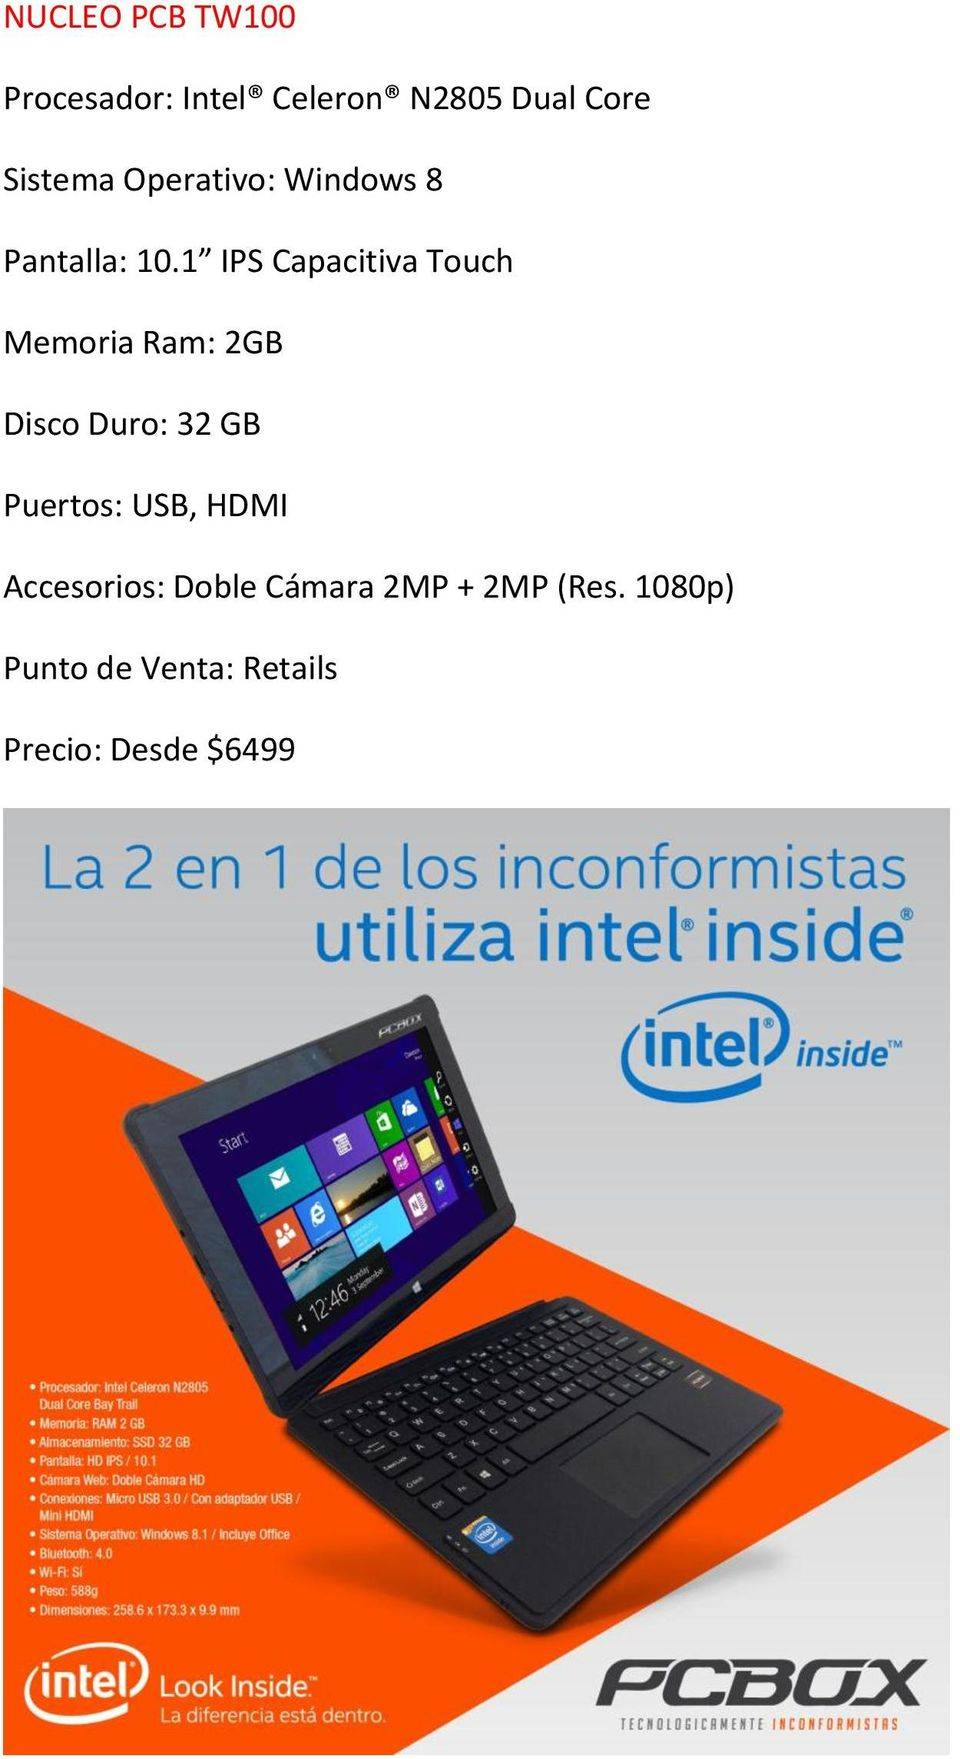 1 IPS Capacitiva Touch Memoria Ram: 2GB Disco Duro: 32 GB Puertos: